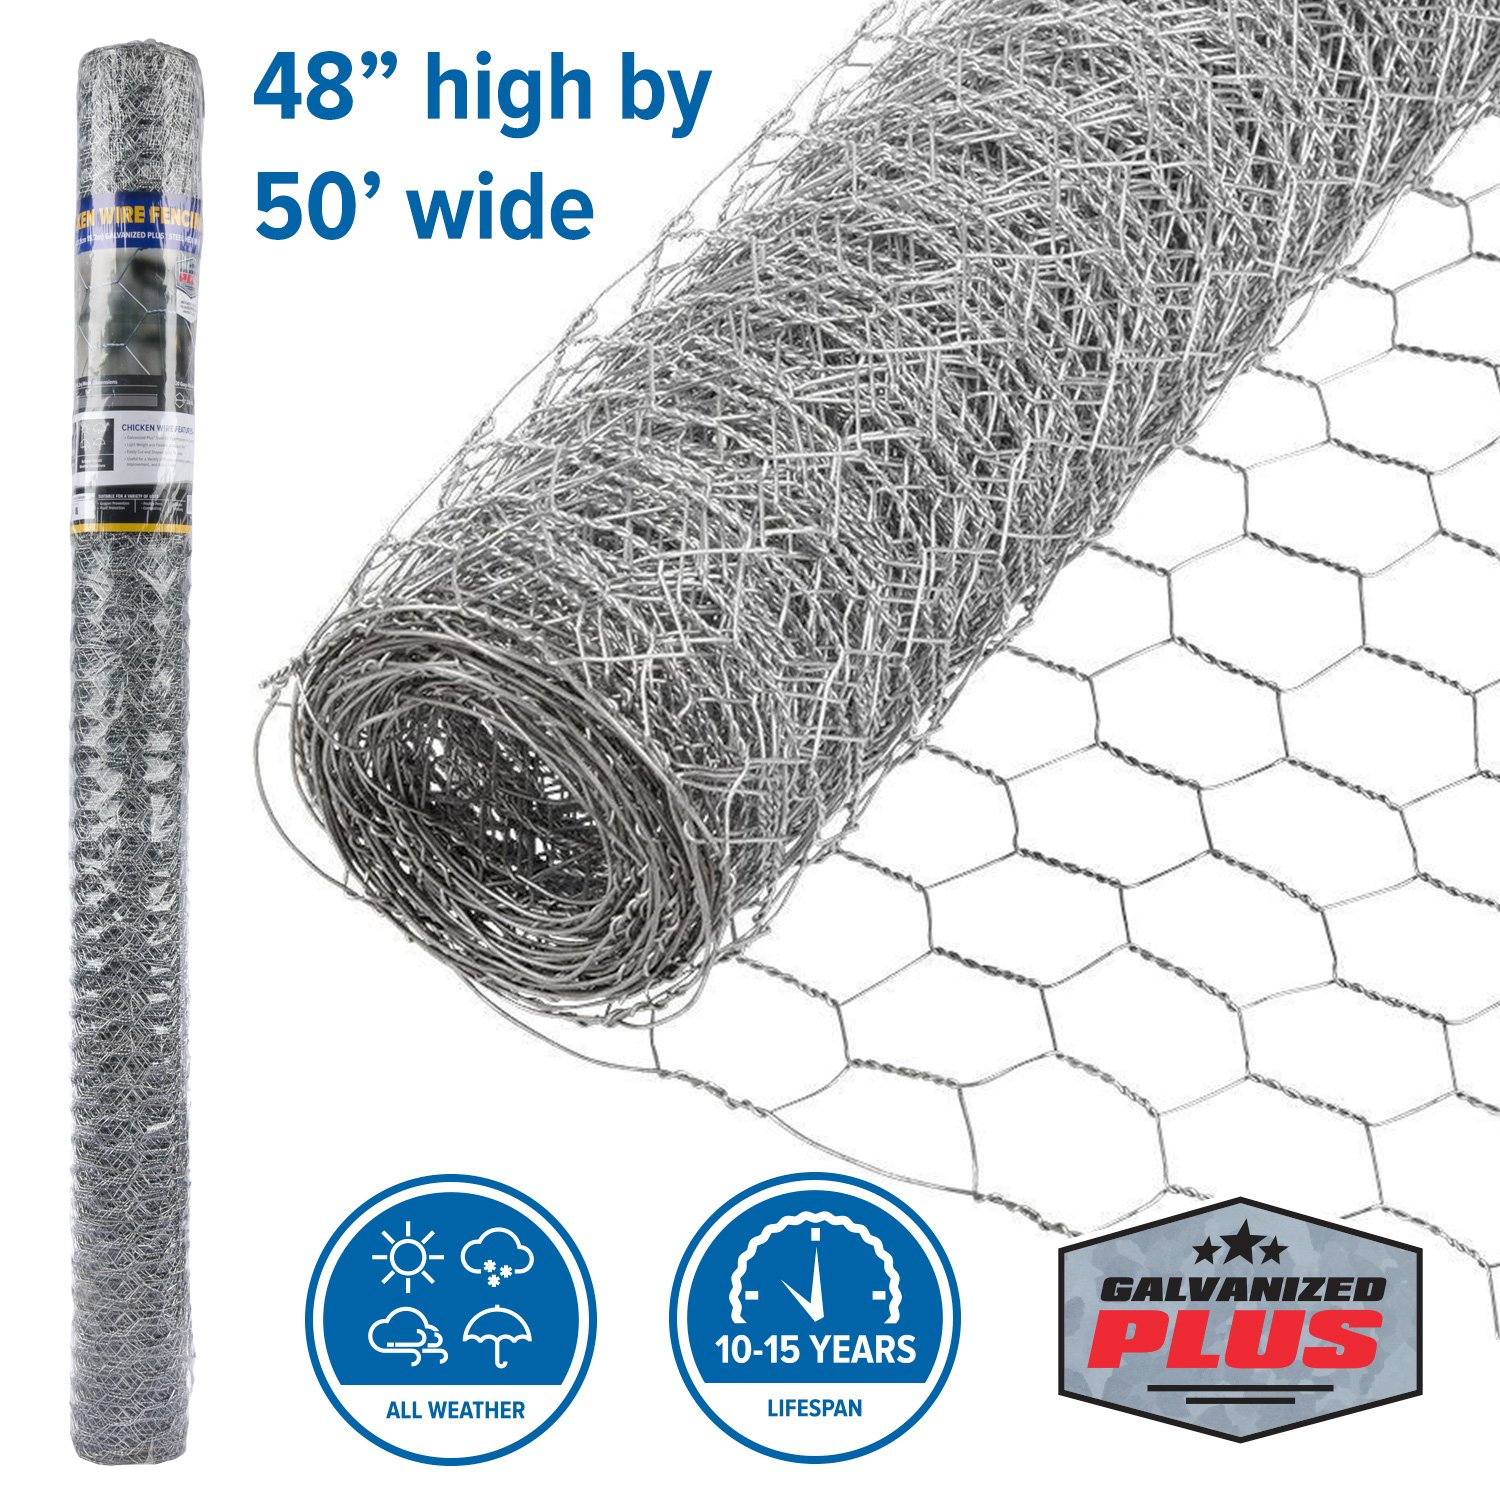 FenceScreen Galvanized Steel 1-in Mesh Chicken Wire Poultry Netting (48-in. x 50-ft.) by FenceScreen (Image #1)